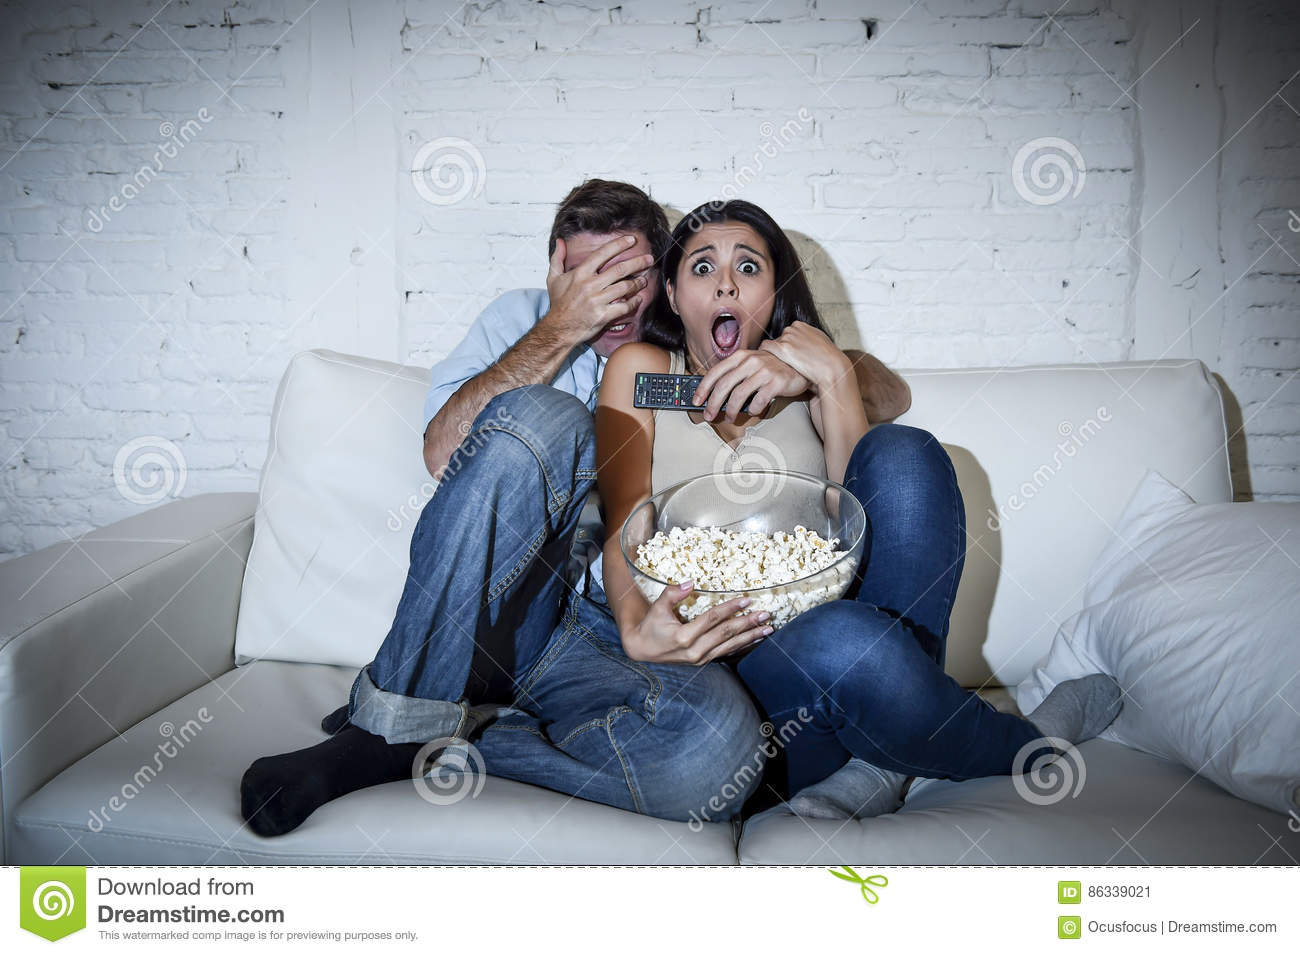 Attractive couple having fun at home enjoying watching television horror movie show